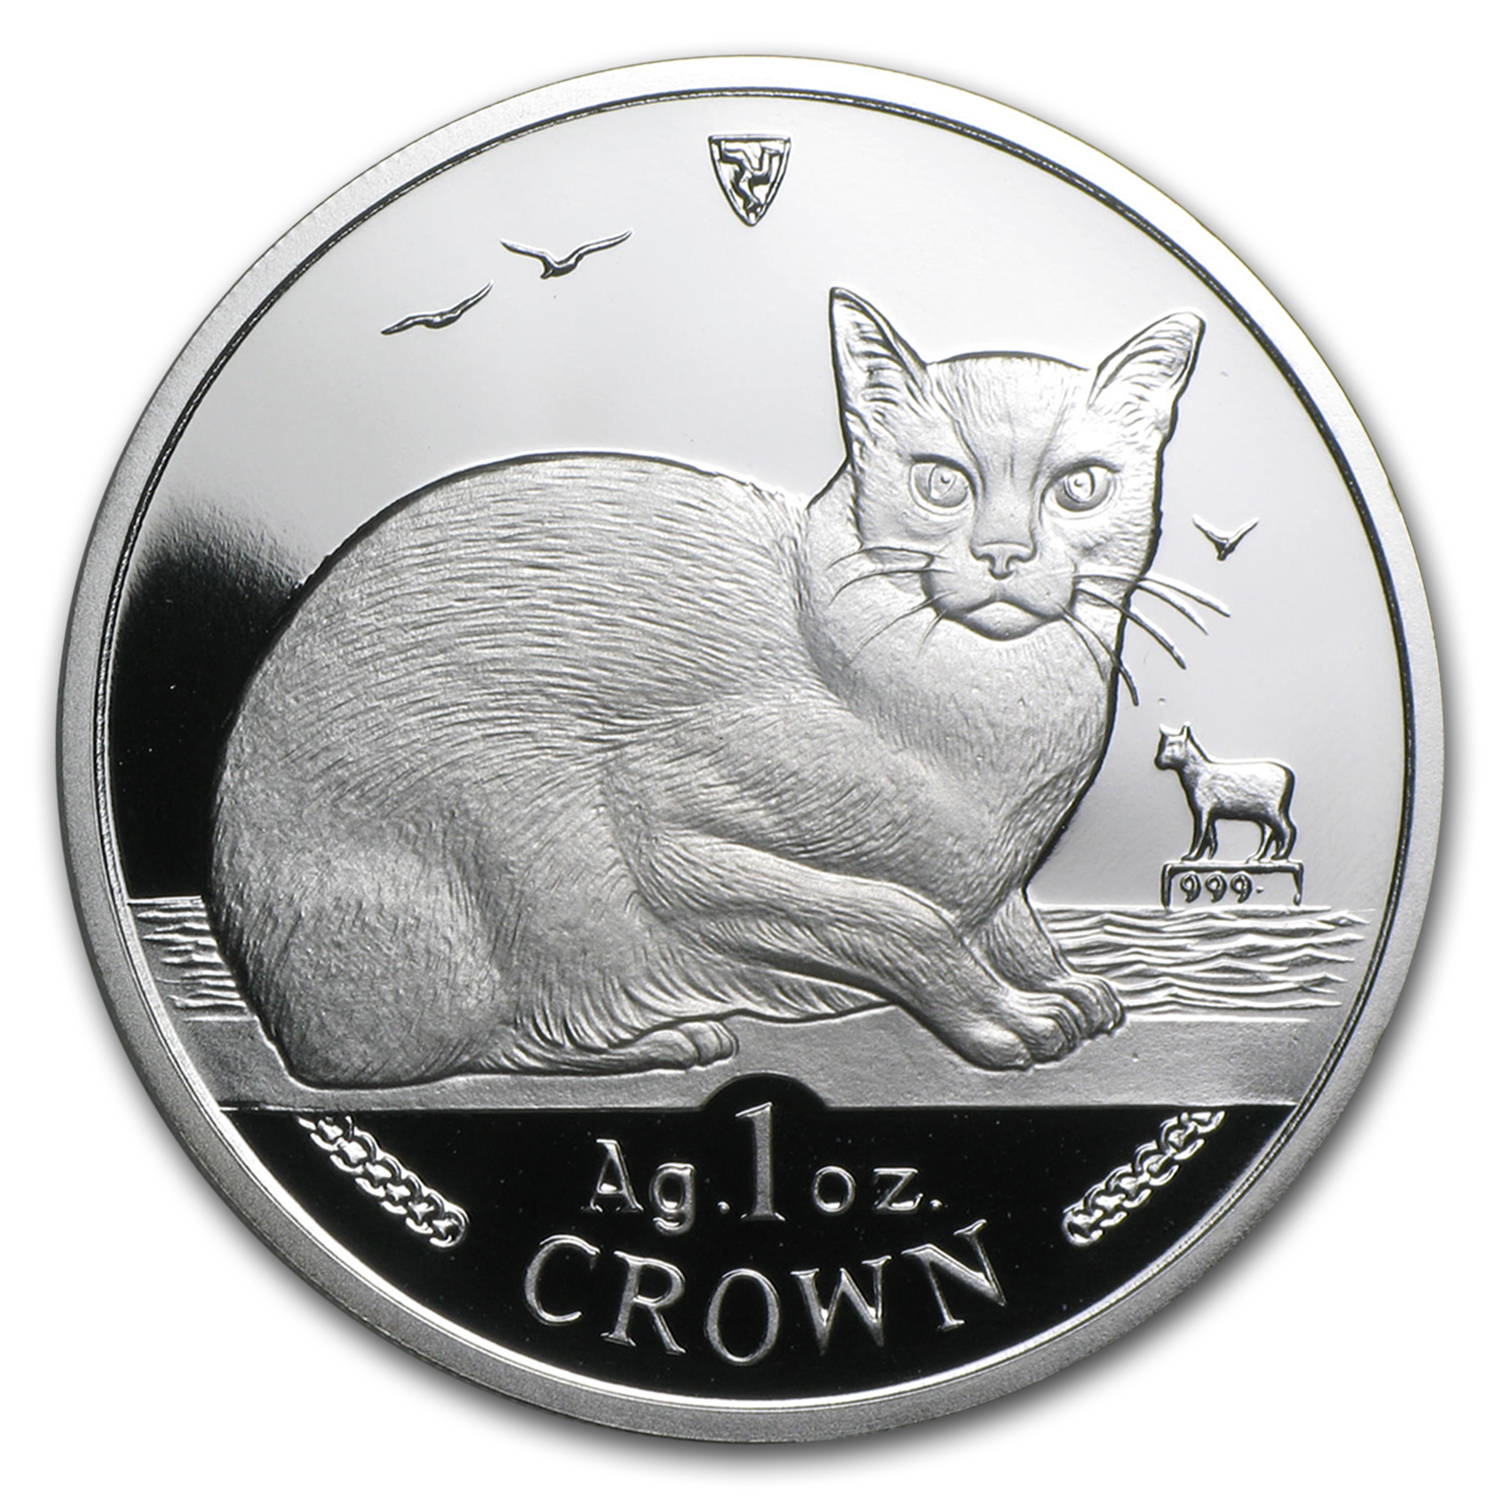 Isle of Man 1996 1 Crown Silver Proof Burmese Cat